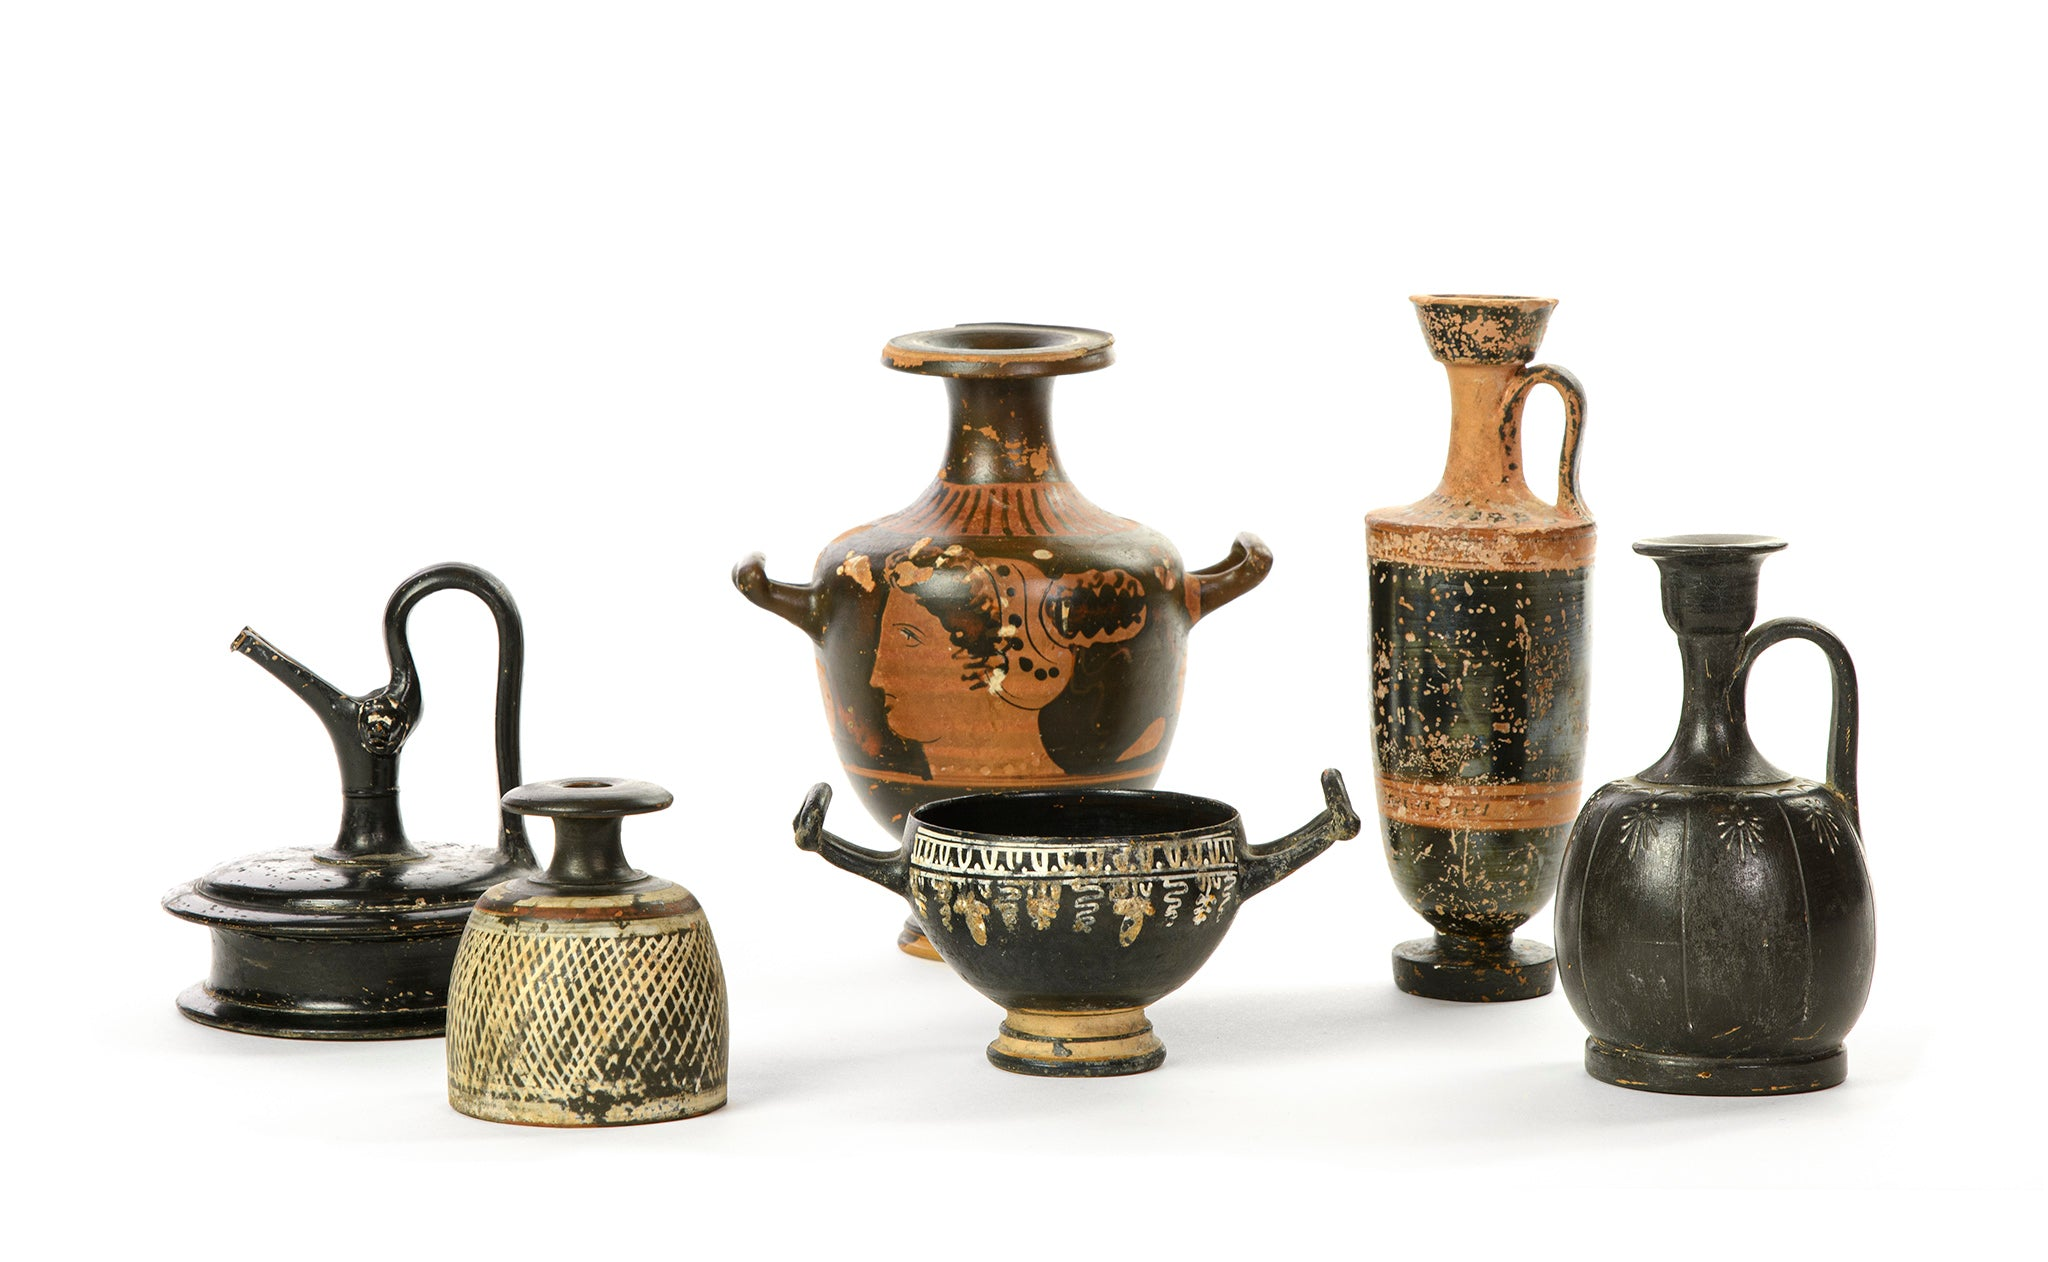 Group of European Antiquities | Greek/Italian, 4th-5th Century B.C.